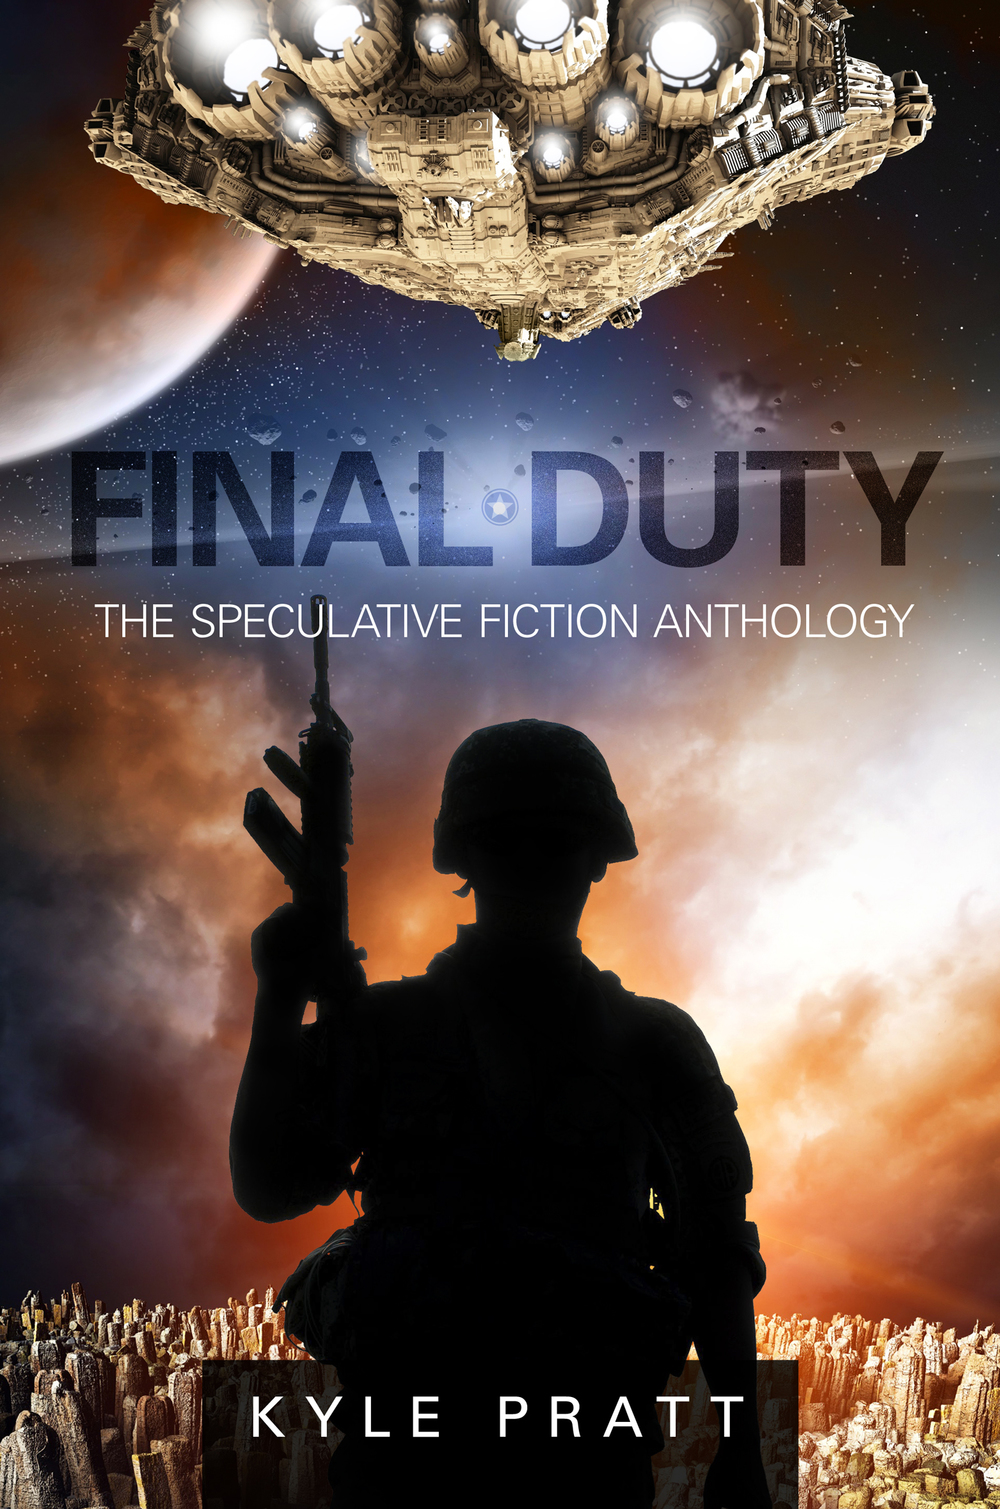 Final_Duty_cover_revised_SMASHWORDS.jpg